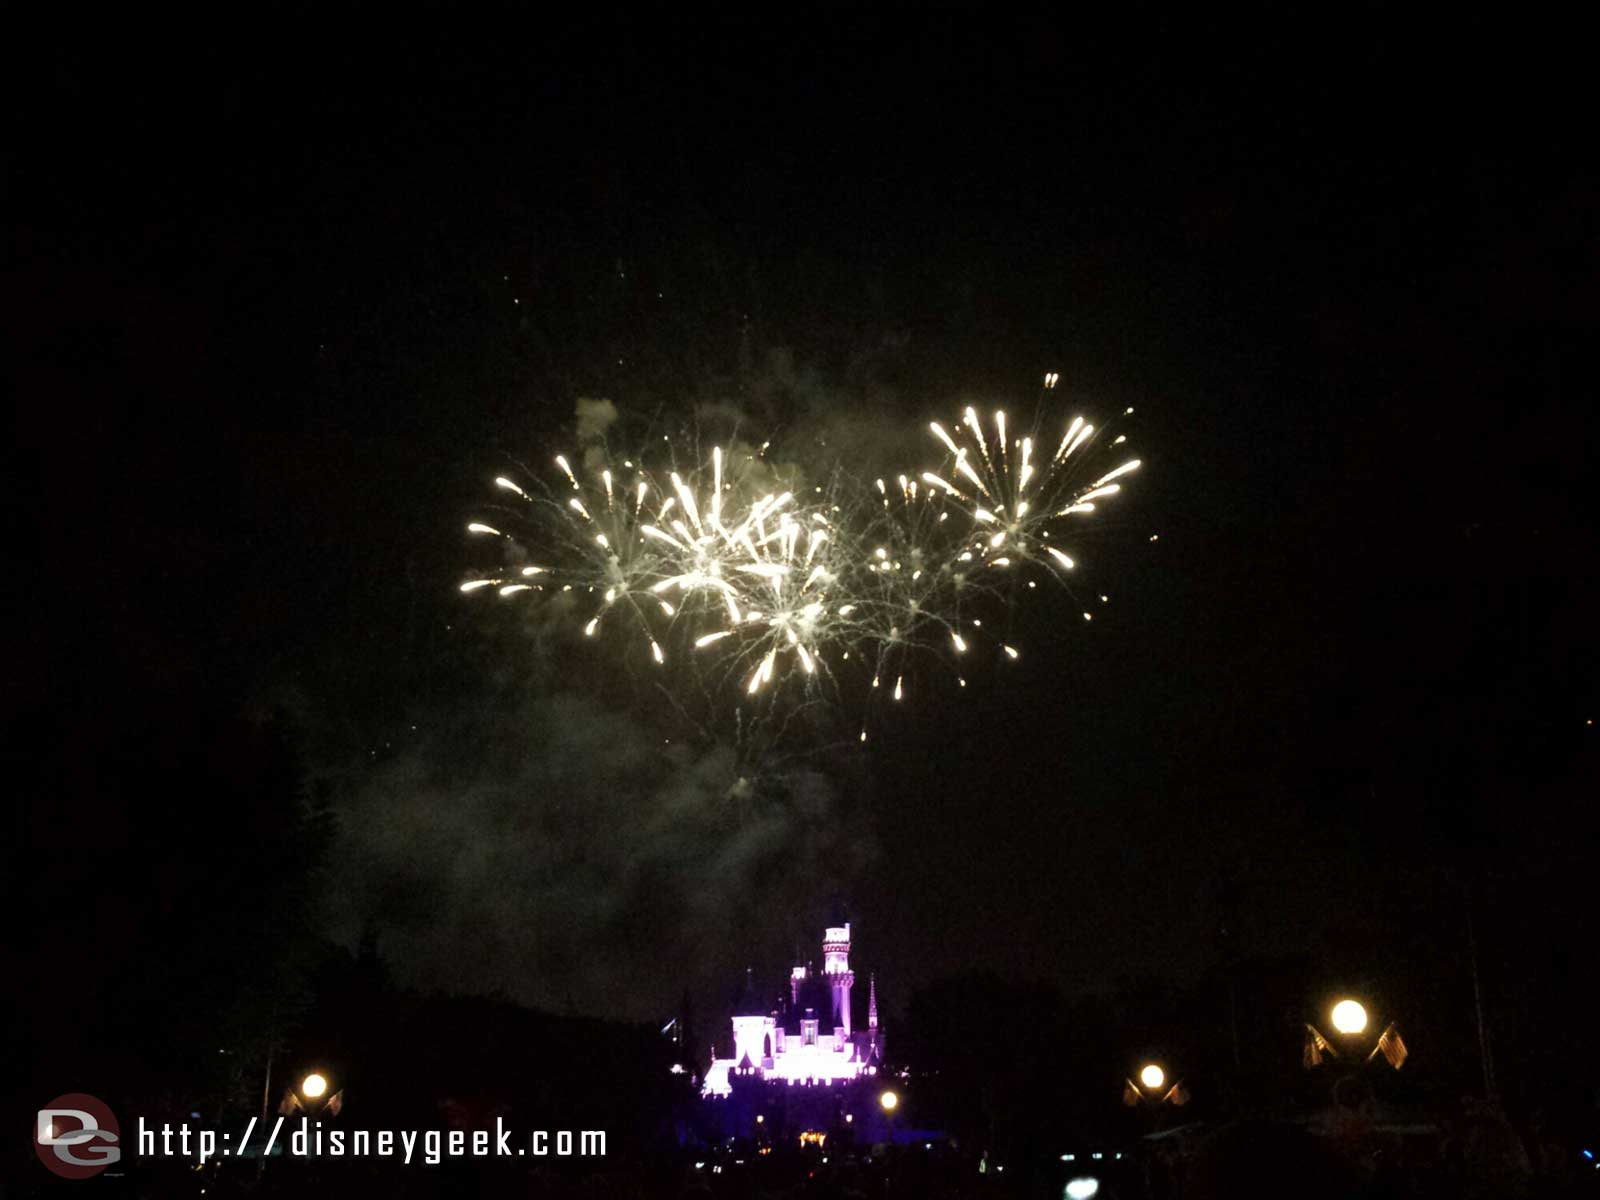 No signs of Tinkerbell during Magical this evening